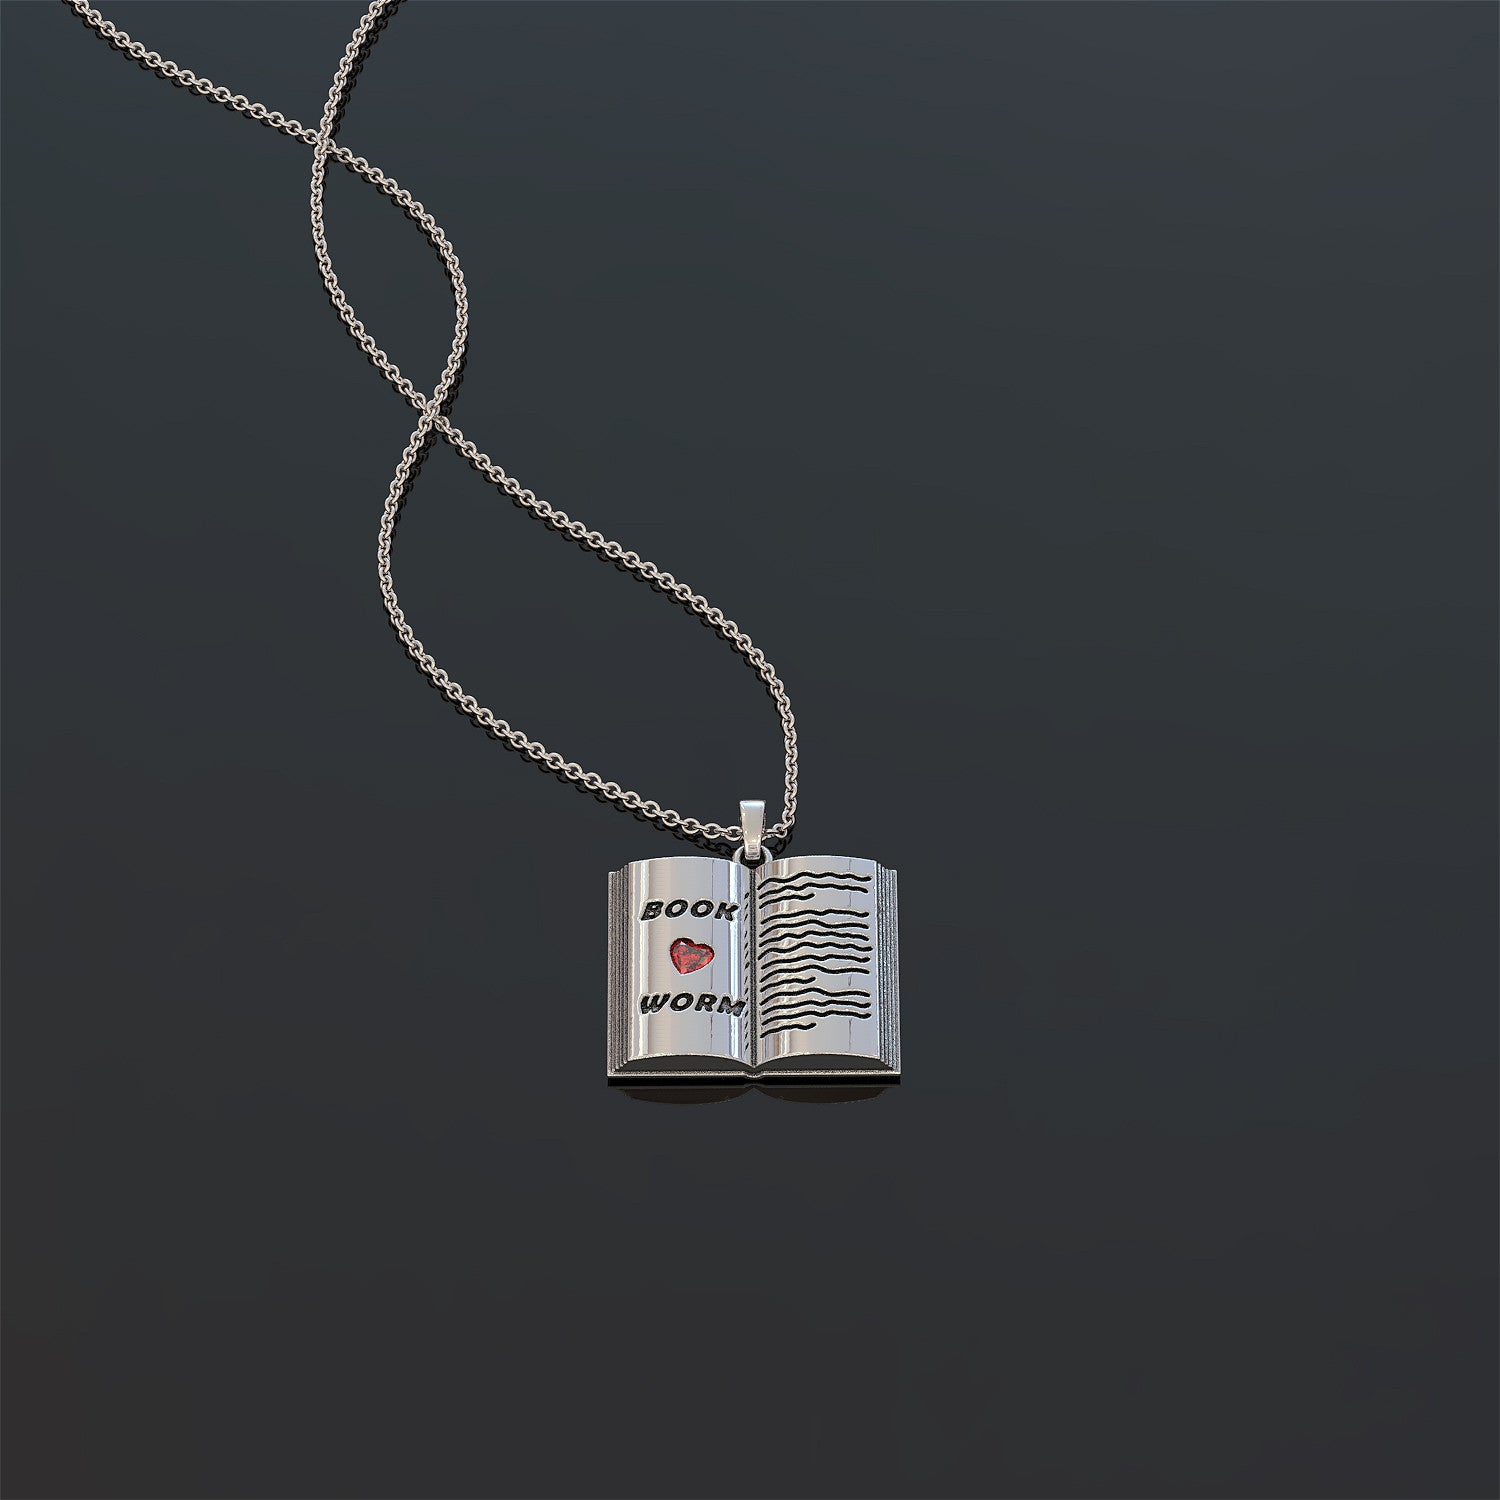 Book Worm Pendant Necklace